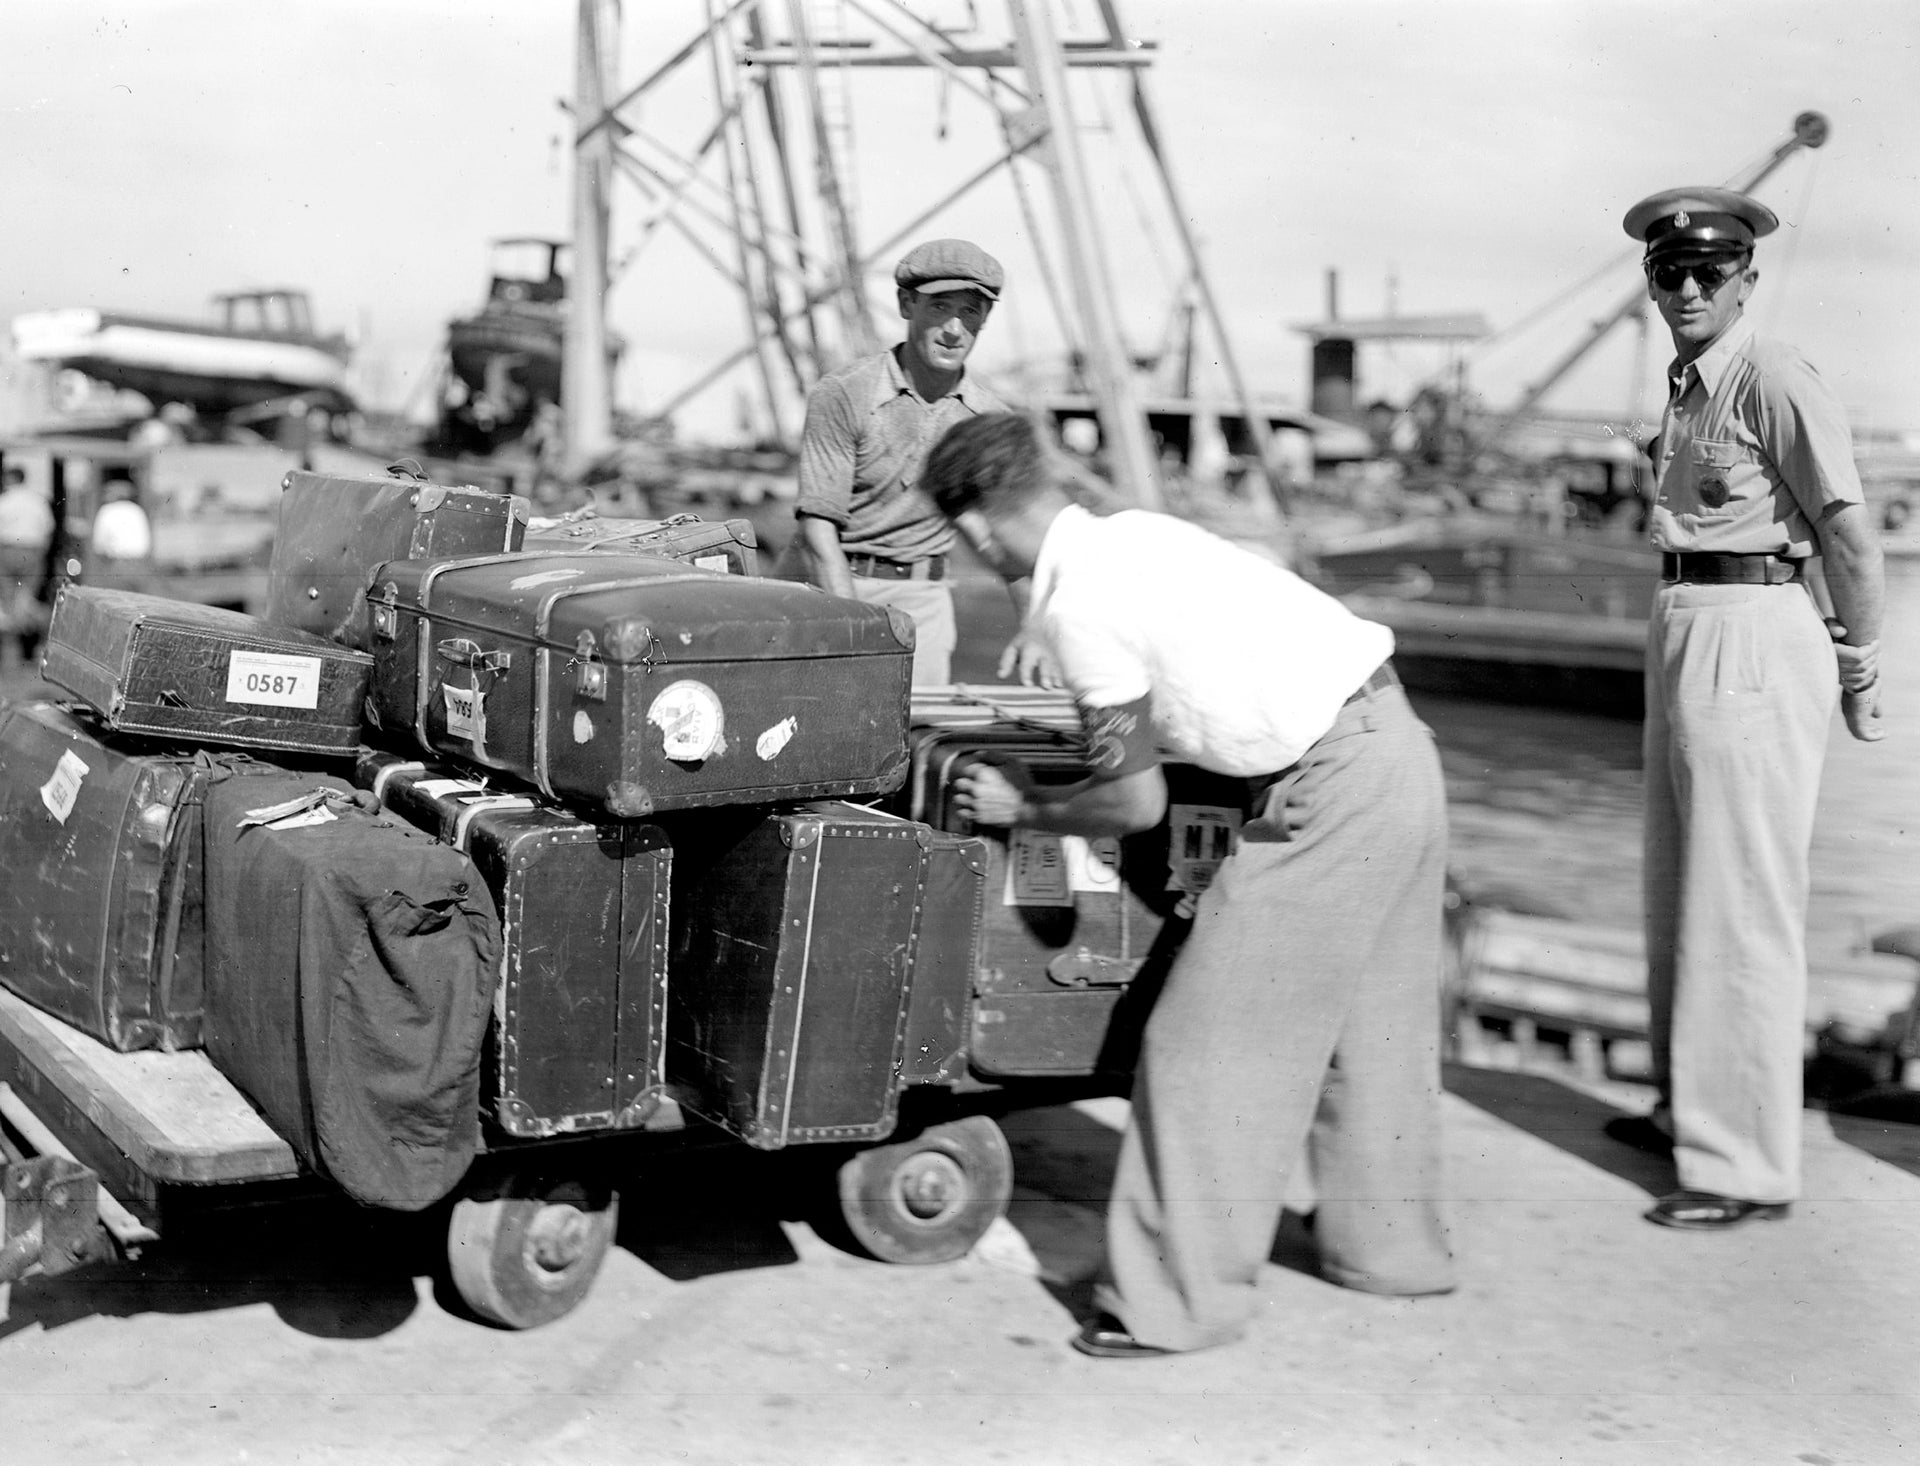 Porters unloading immigrants' luggage at Tel Aviv Port in 1938.